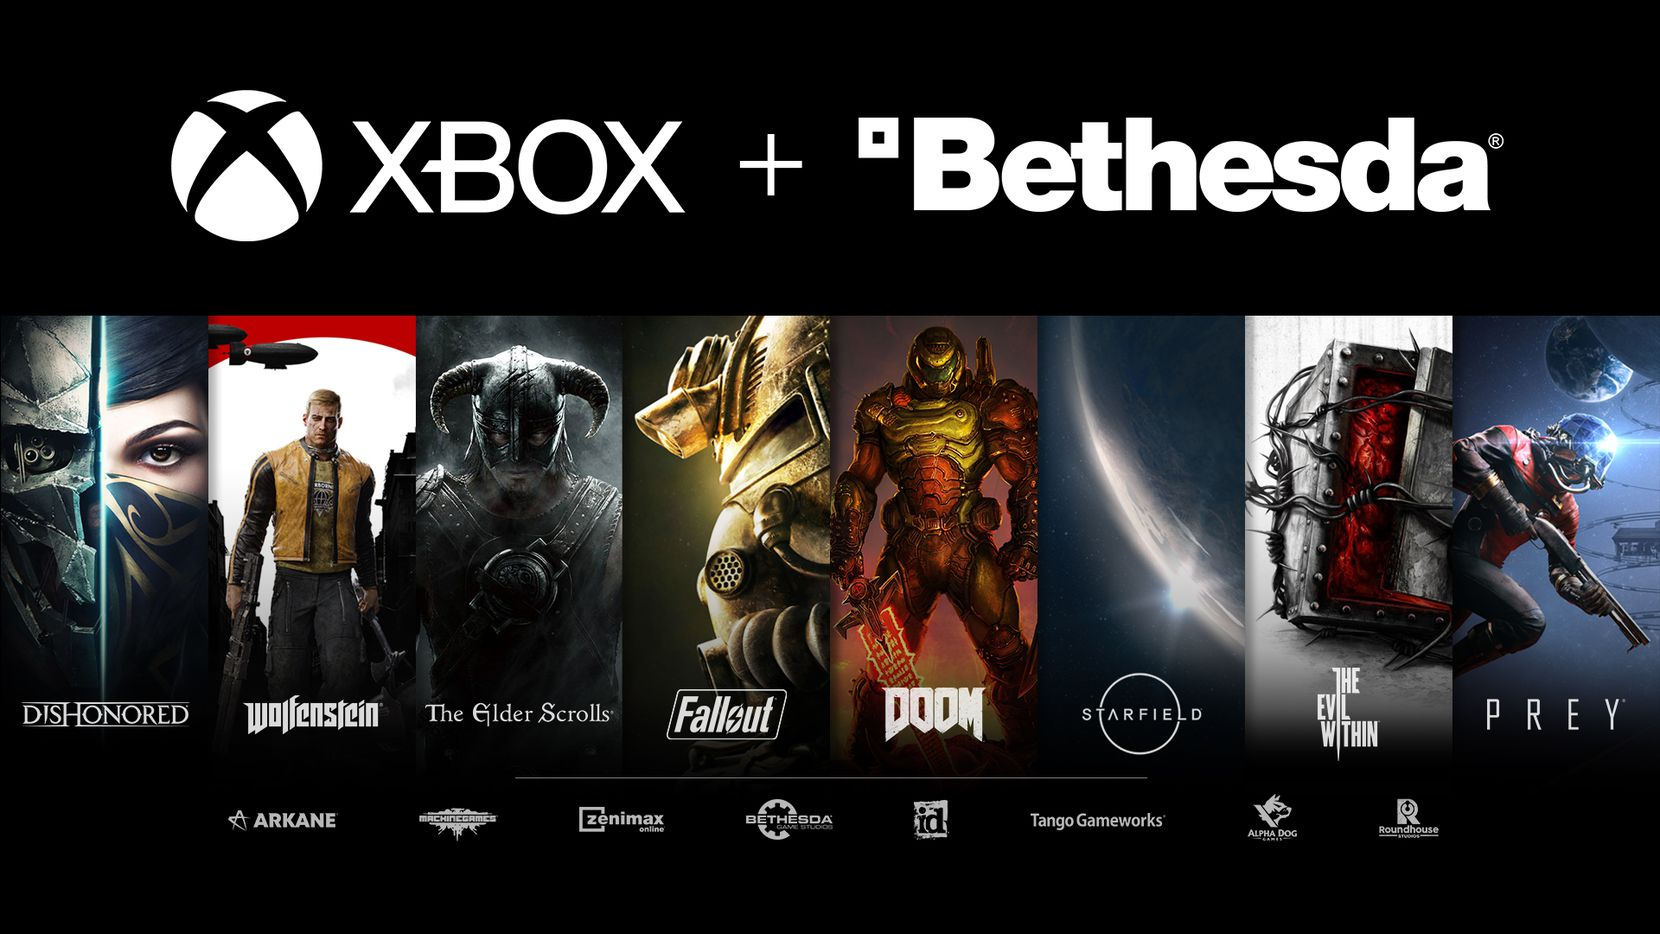 An image released by Microsoft alongside the announcement that they are acquiring ZeniMax Media, parent company of Bethesda.